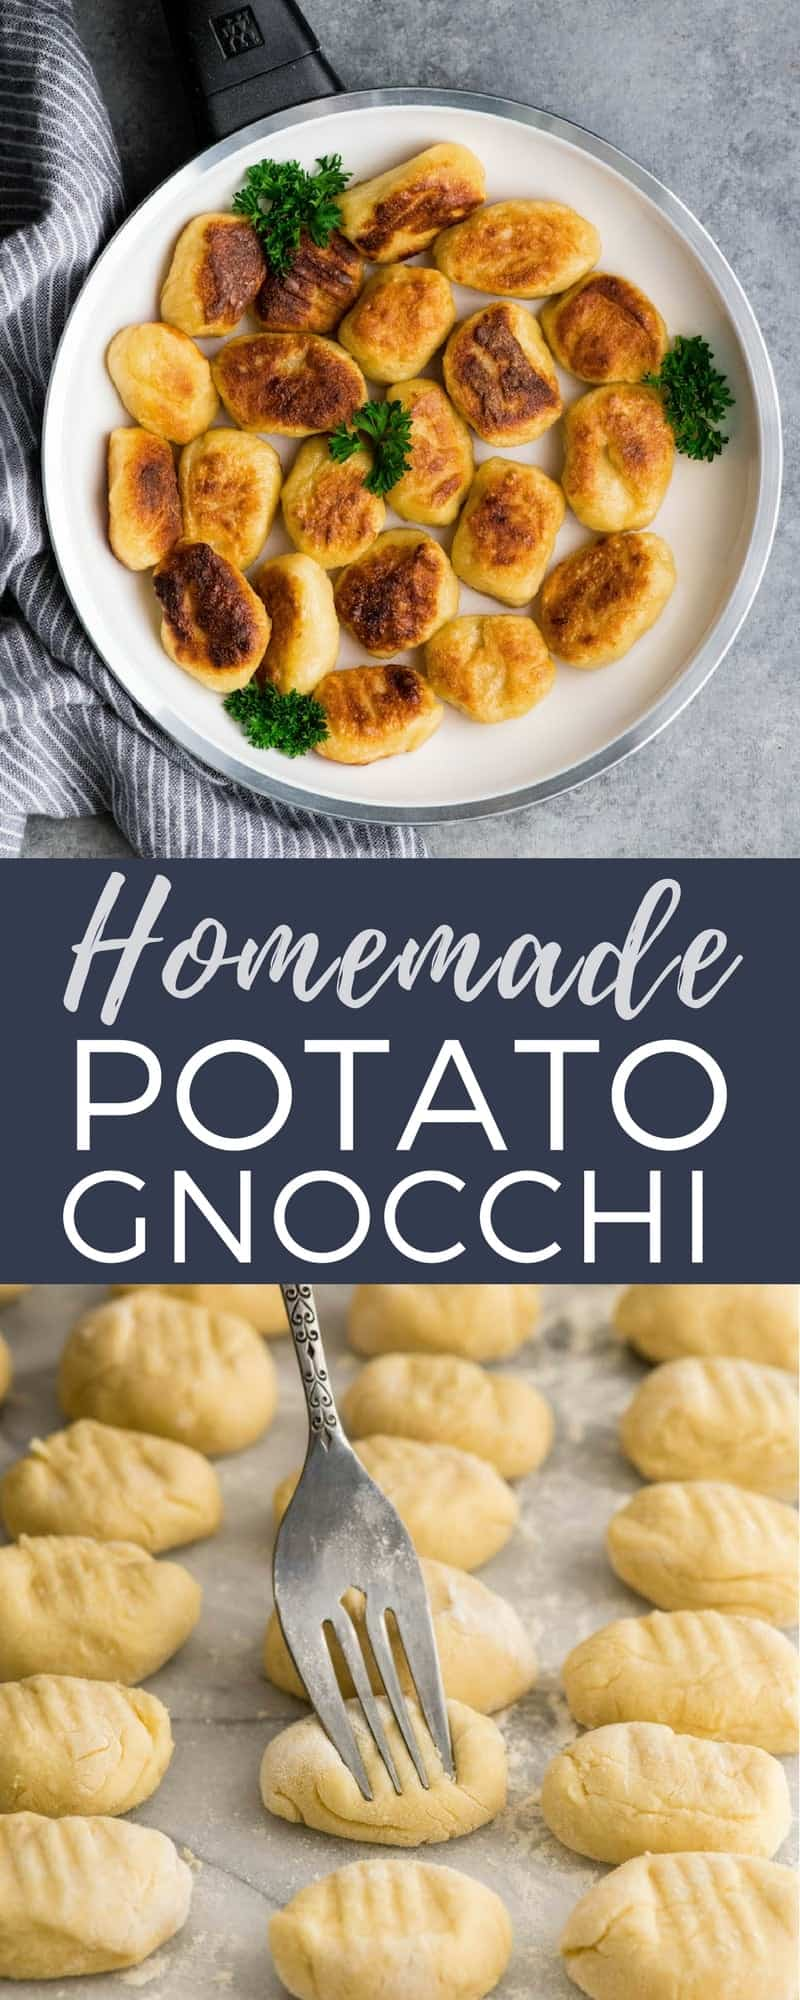 This Homemade Potato Gnocchi Recipe is made with only 5 ingredients and is SO much better than store bought varieties! Seriously we only ever eat homemade gnocchi! This version has cheddar cheese in the dough, setting it apart from all the others! It's freezer friendly and beloved by kids and adults! #gnocchi #recipe #homemade #potatognocchi #fromscratch #healthyrecipe